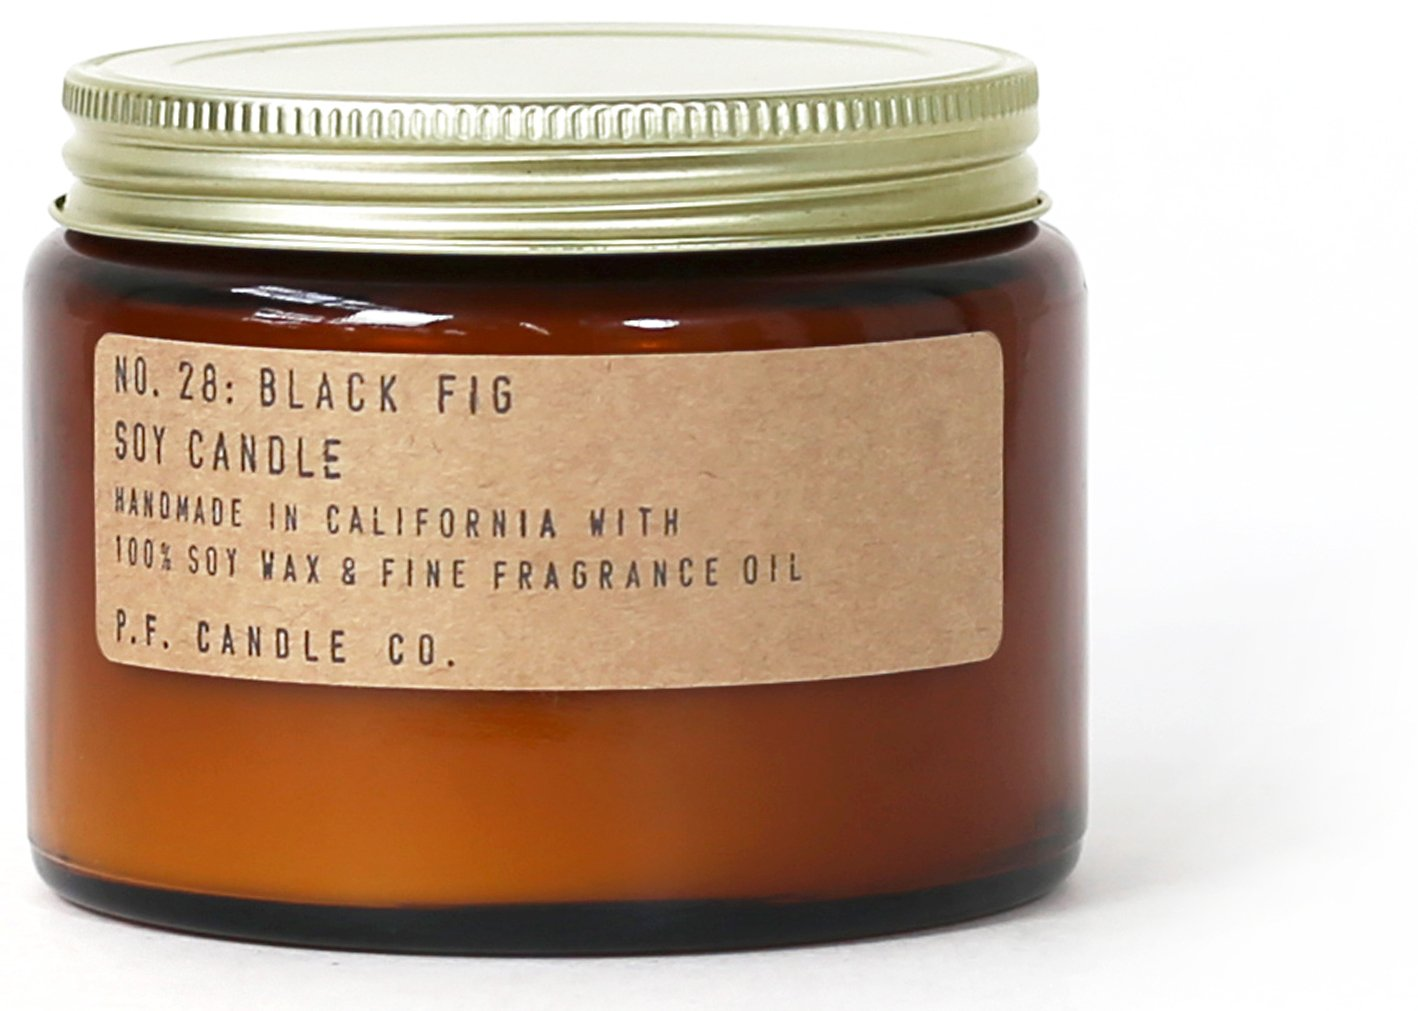 P.F. Candle Co. - No. 28: Black Fig Soy Candle (Double Wick (14 oz))